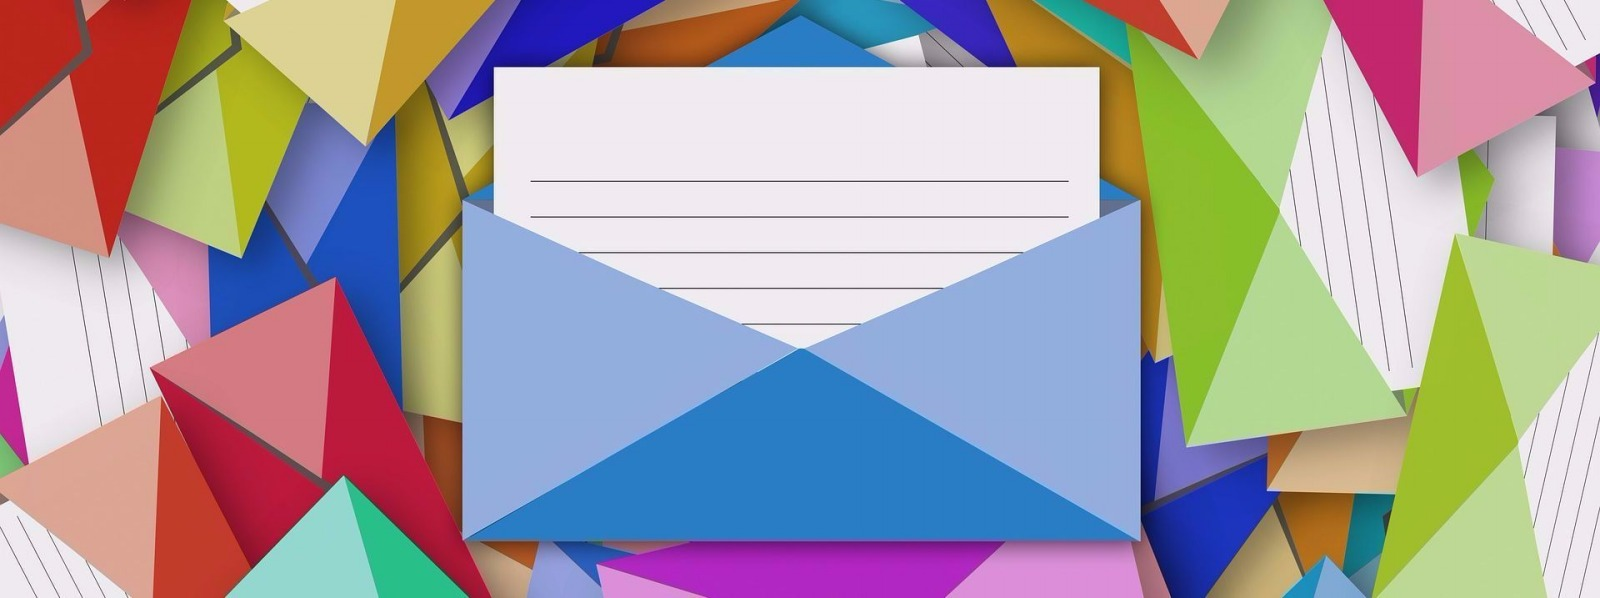 Email Subject Lines That Get Opened